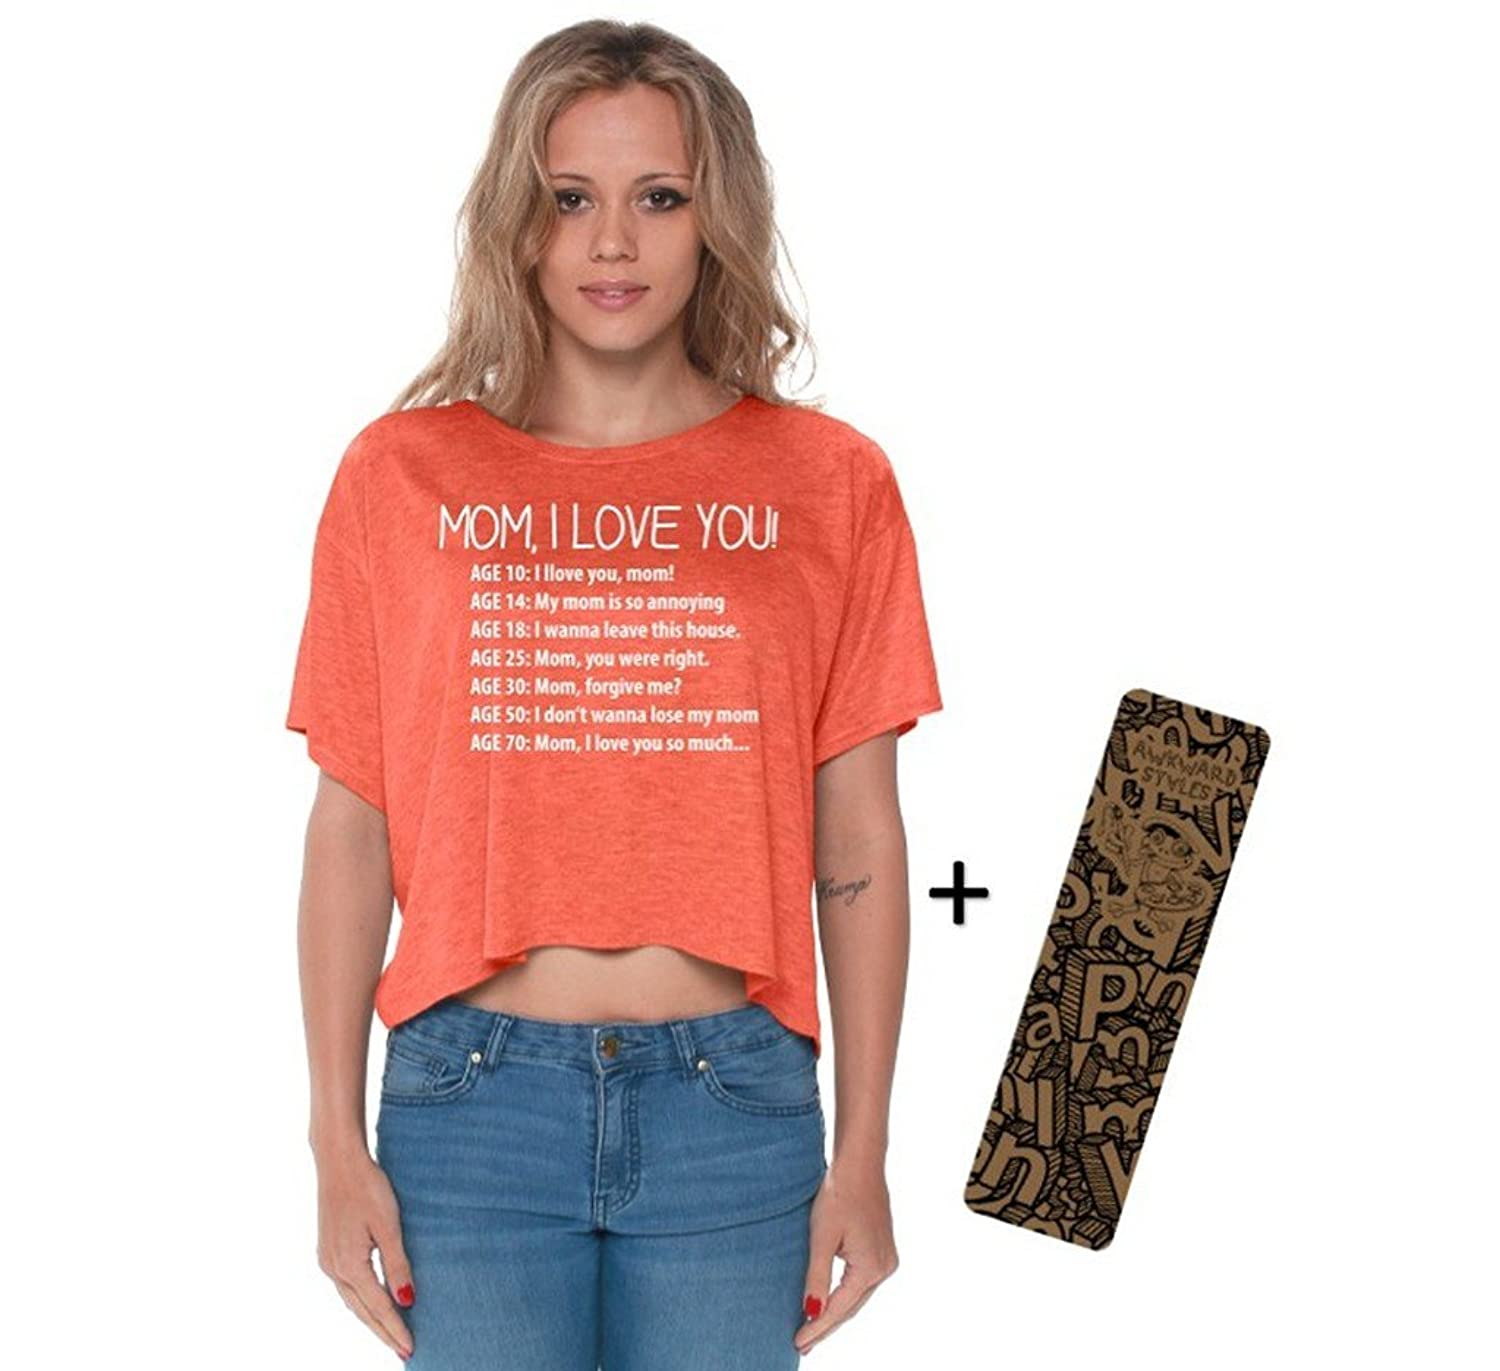 Awkwardstyles Mom I Love You Boxy Crewneck Flowy Crop Top White + Bookmark